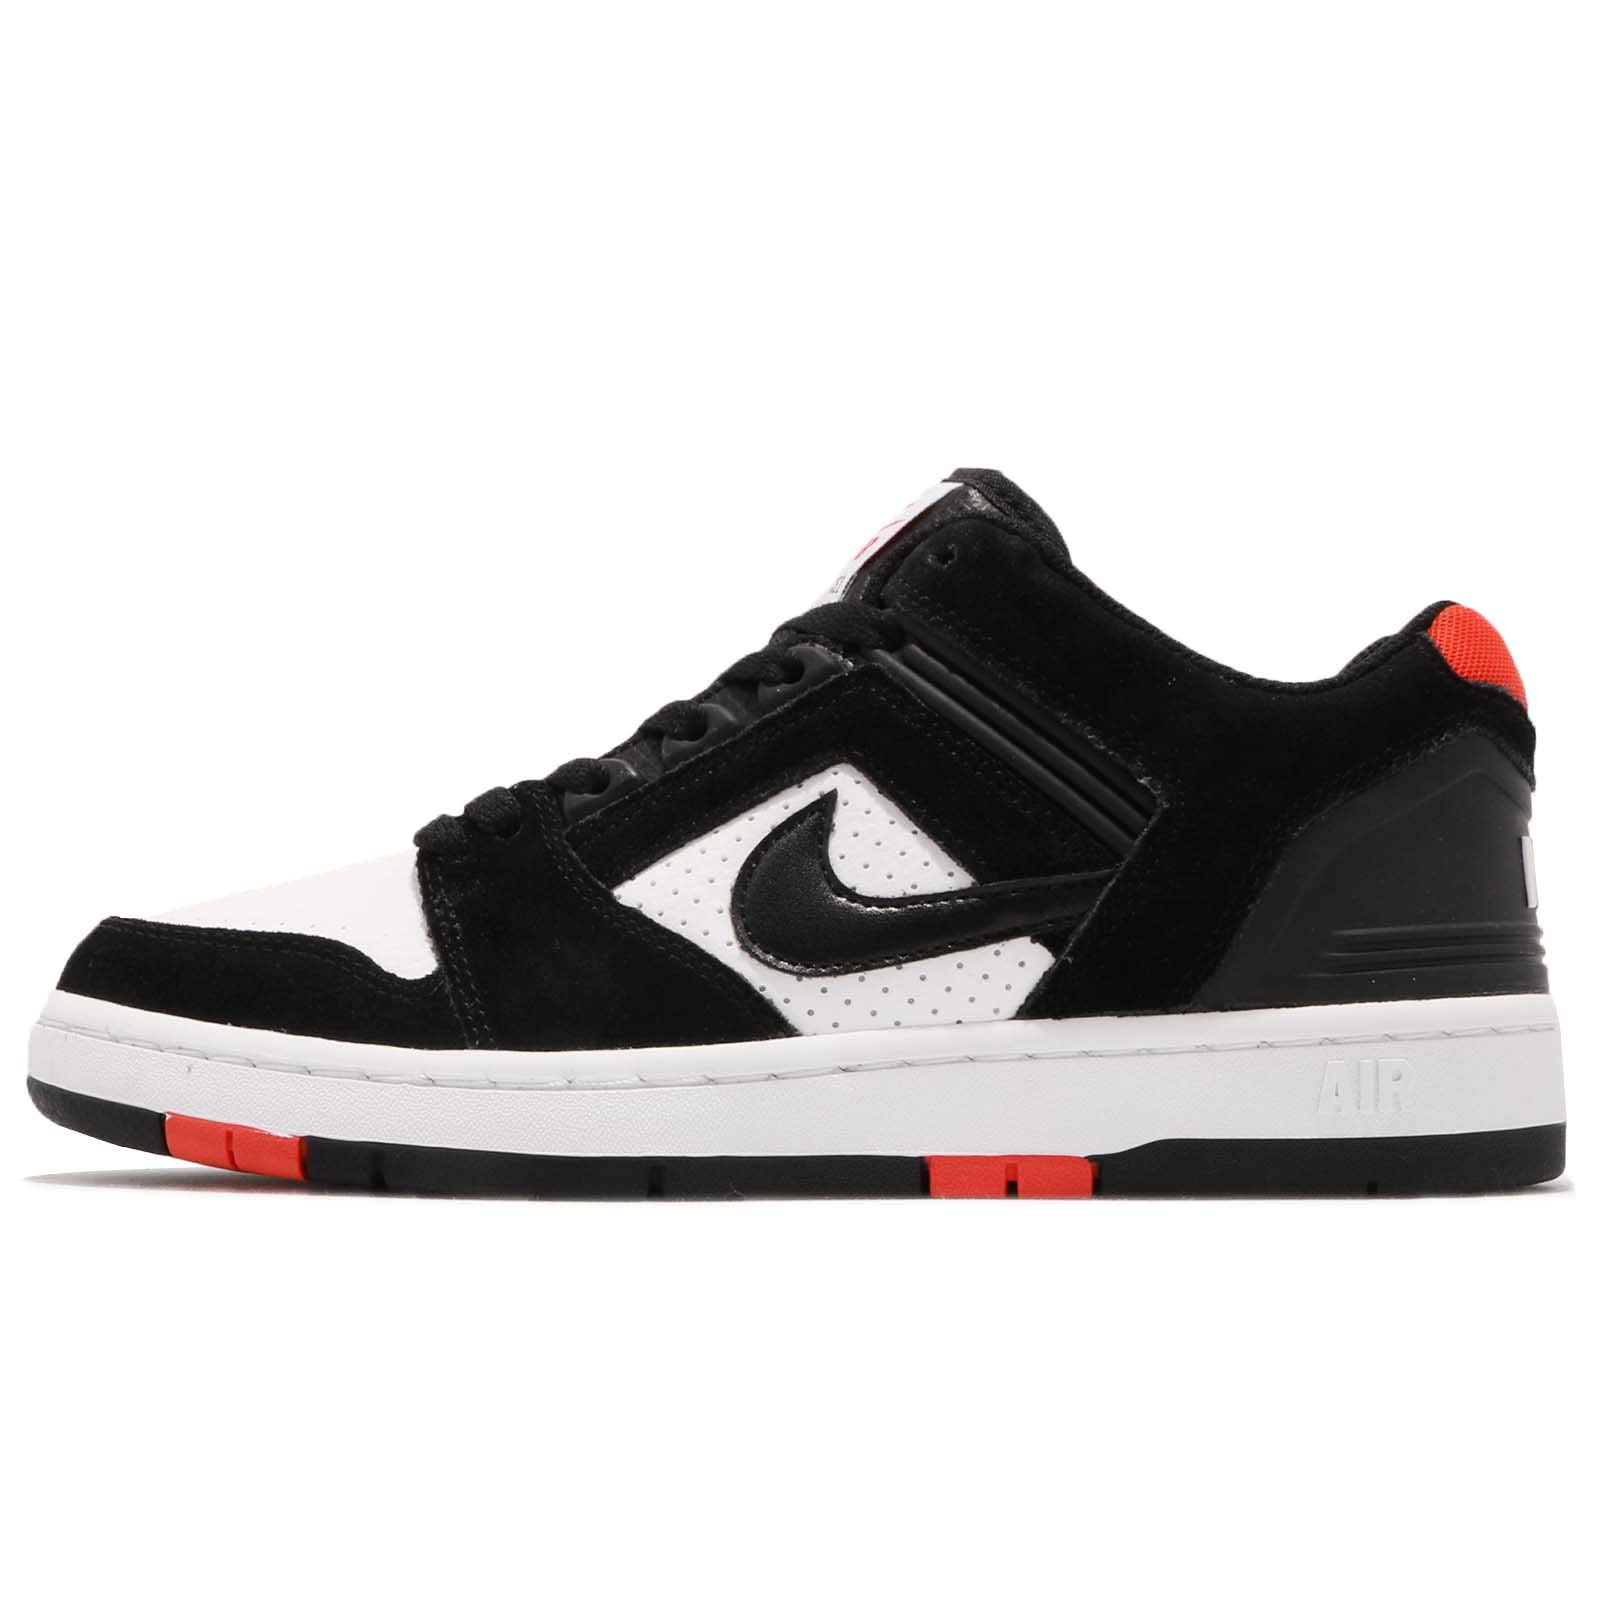 hot sale online ef9bd ad769 Galleon - Nike Men s SB Air Force II Low, Black Black-White-Habanero RED,  11 M US